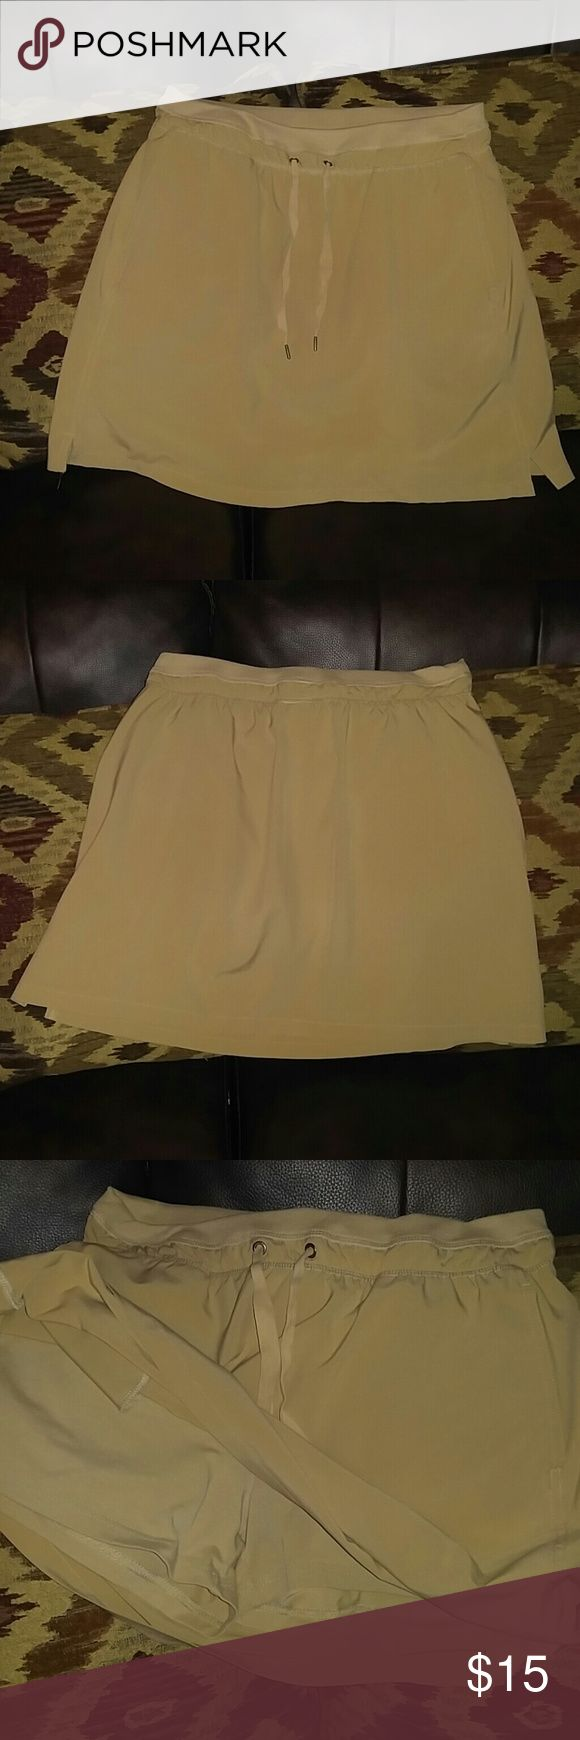 EUC Green Tea Yoga Skirt w/built in shorts Sz M This tan yoga skirt from Green Tea is in EUC. Has hidden pockets and built in shorts, draw string waist and very cute and comfy! Size M. green tea Skirts Mini